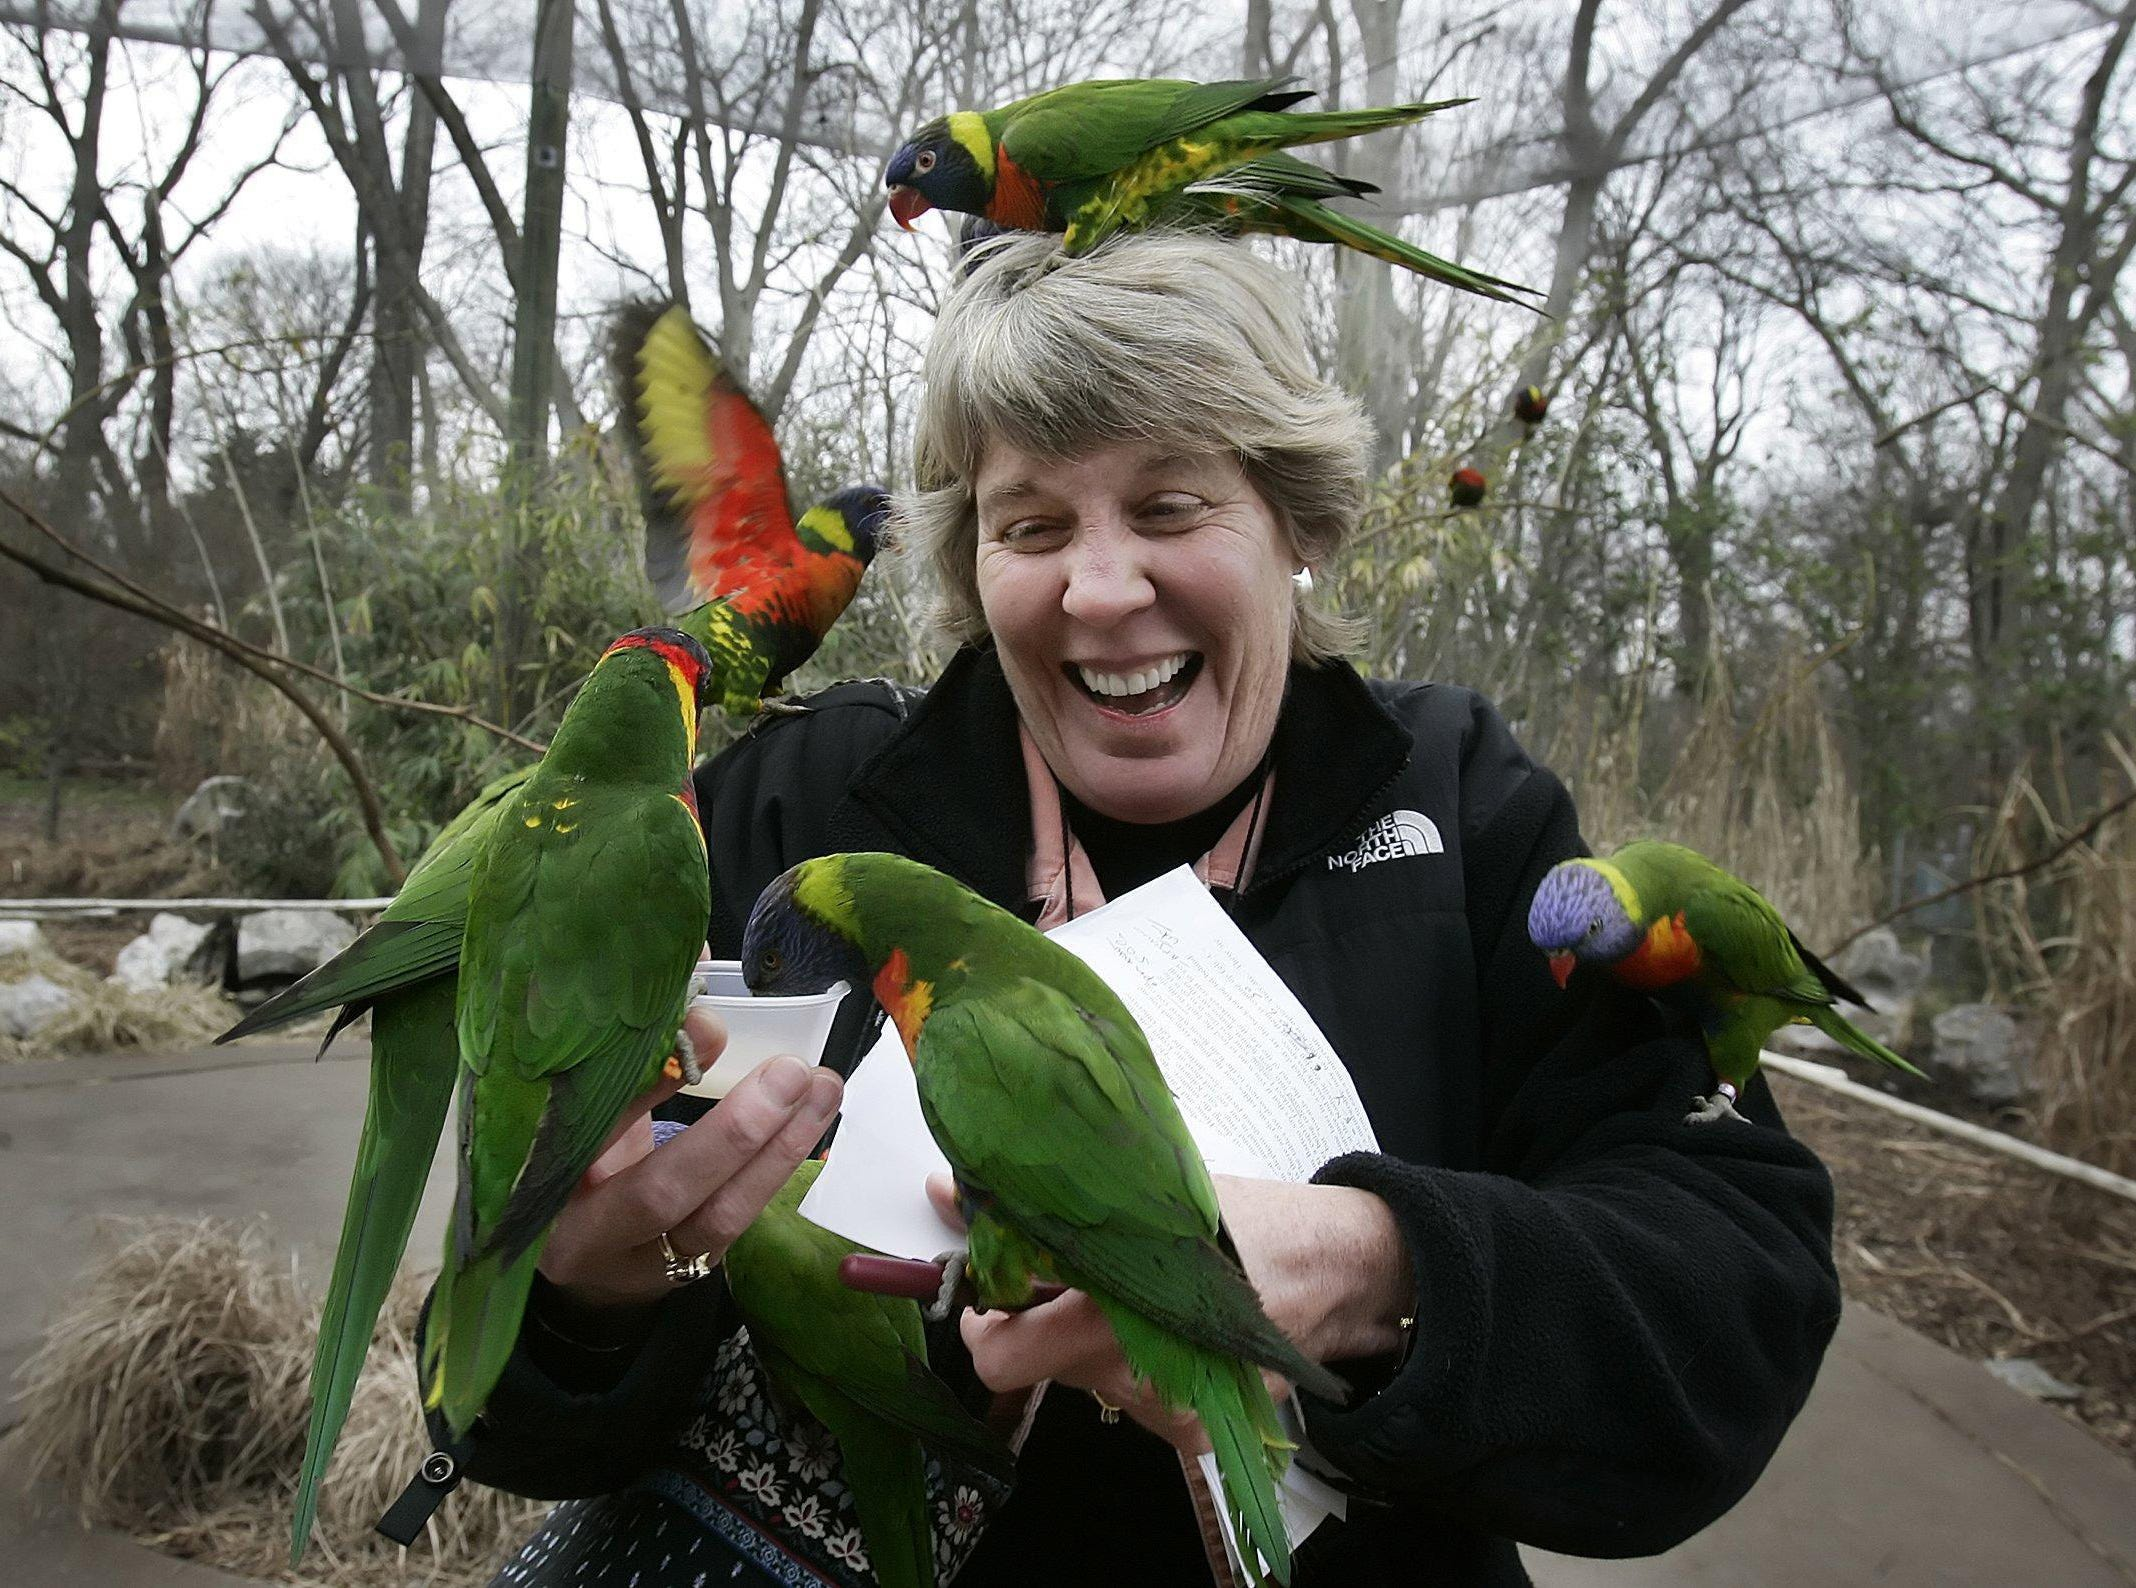 Ms. Cheap's Mary Hance gets a visit from friends at Lorikeet Landing, an aviary at the Nashville Zoo, on Jan. 15, 2007.